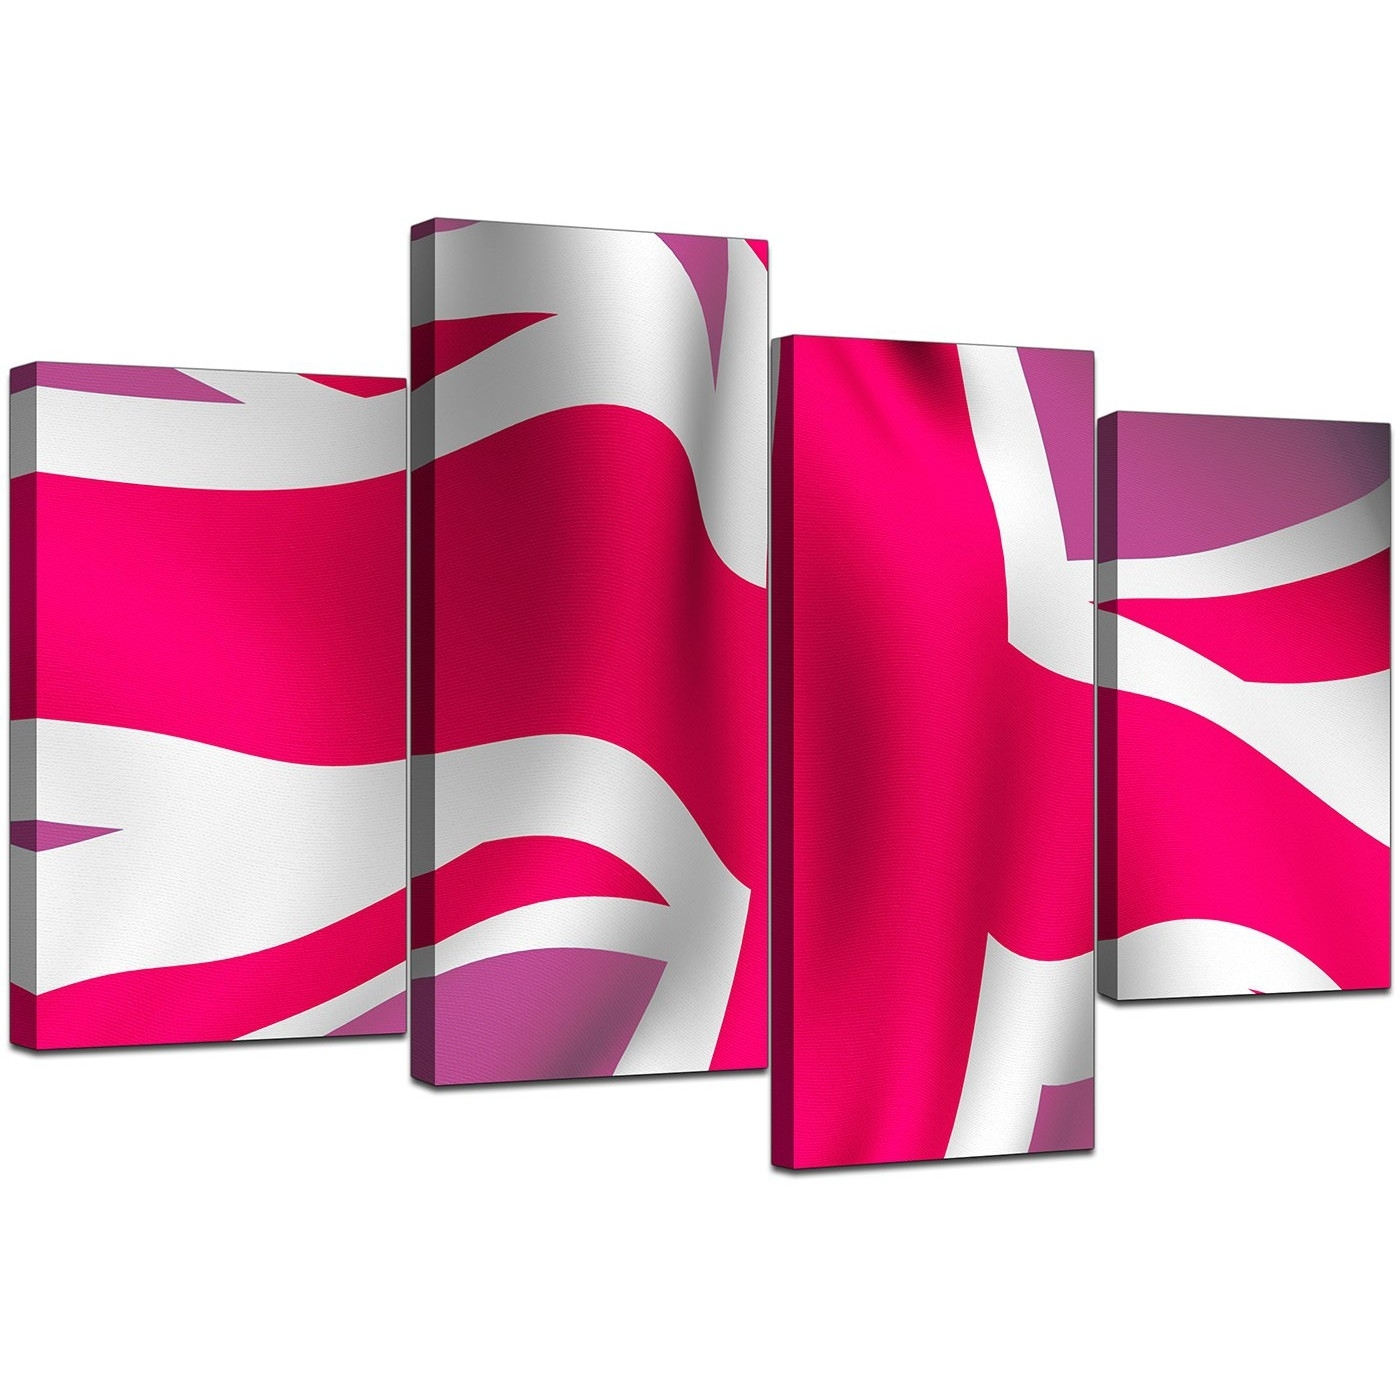 Modern Union Jack Canvas Prints In Pink – For Bedroom In Most Recently Released Union Jack Canvas Wall Art (View 8 of 15)